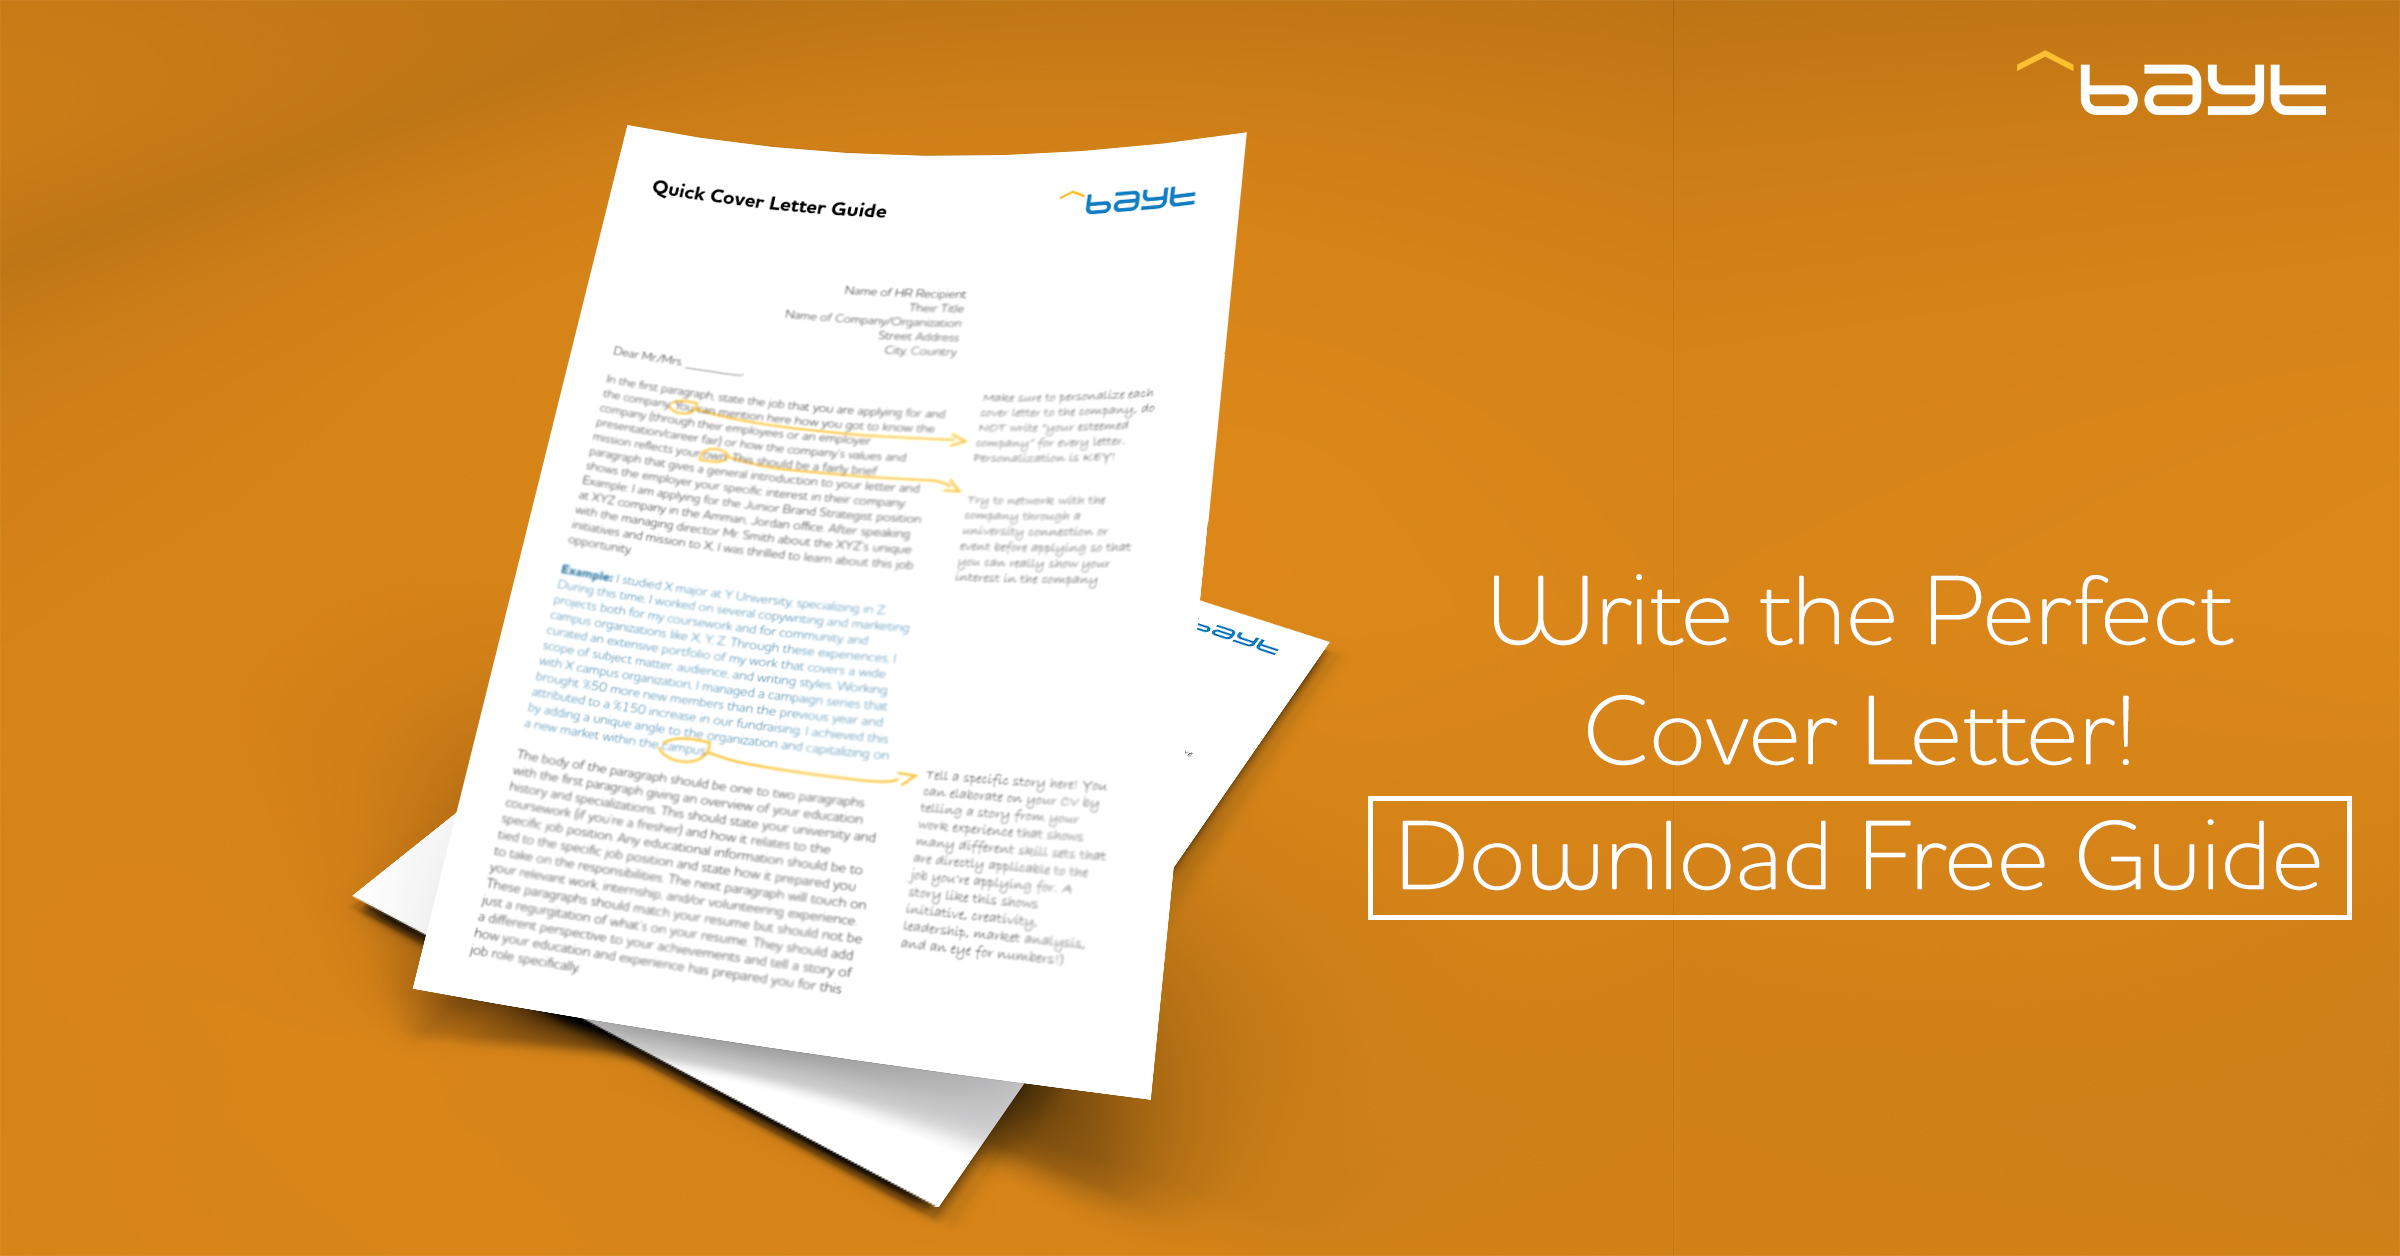 Why You Need Bayt.com's FREE Cover Letter Guide!